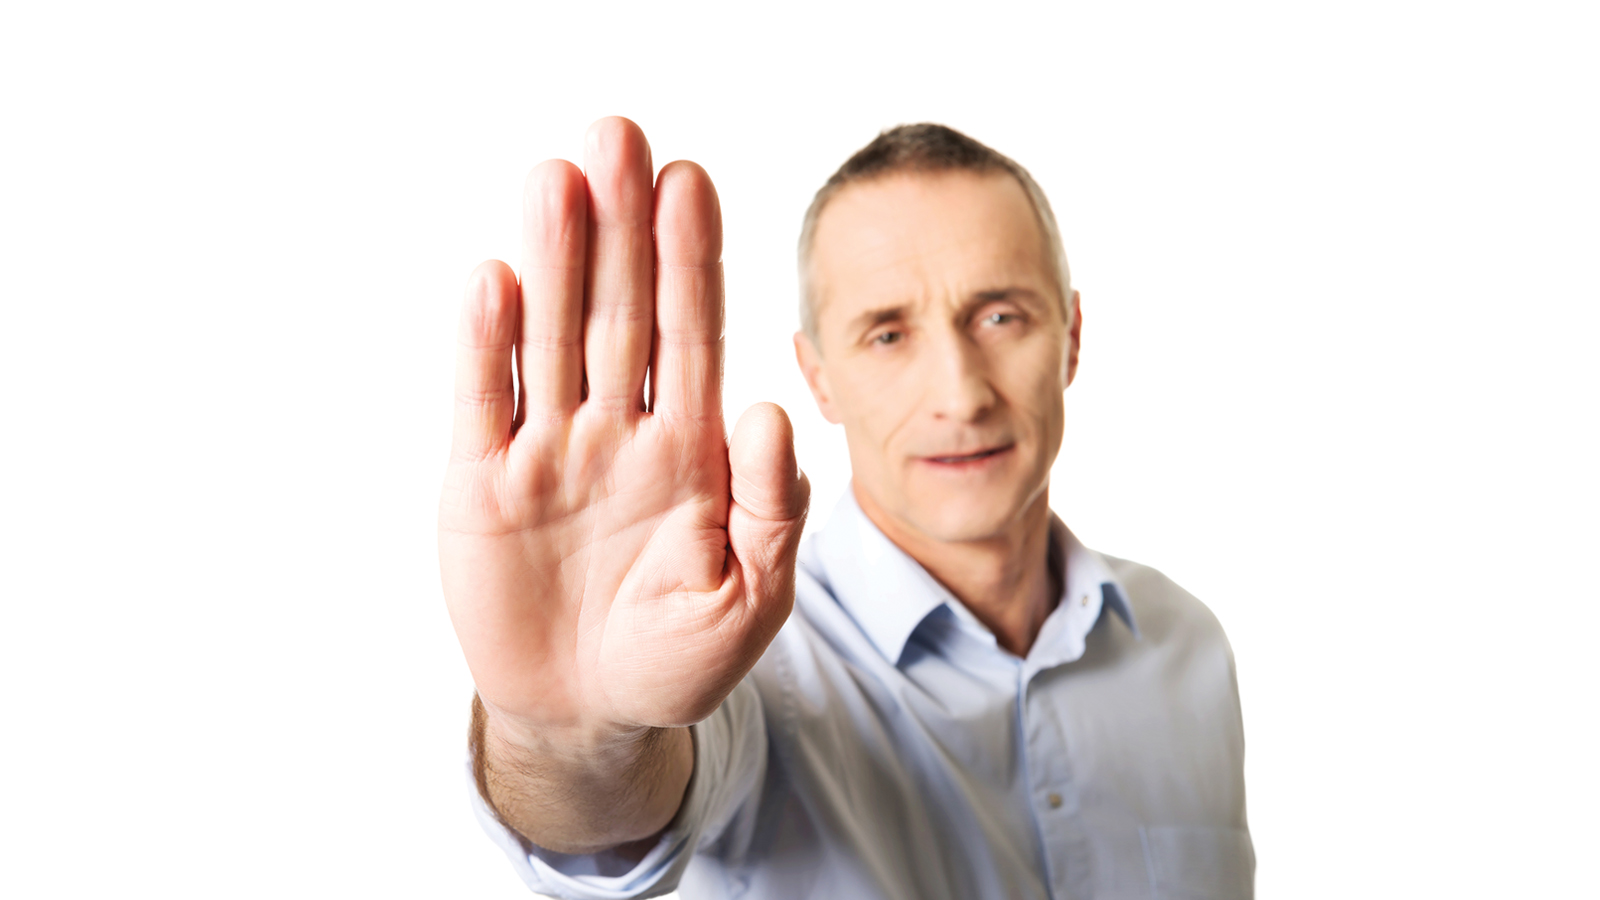 man making a stop gesture with his hand